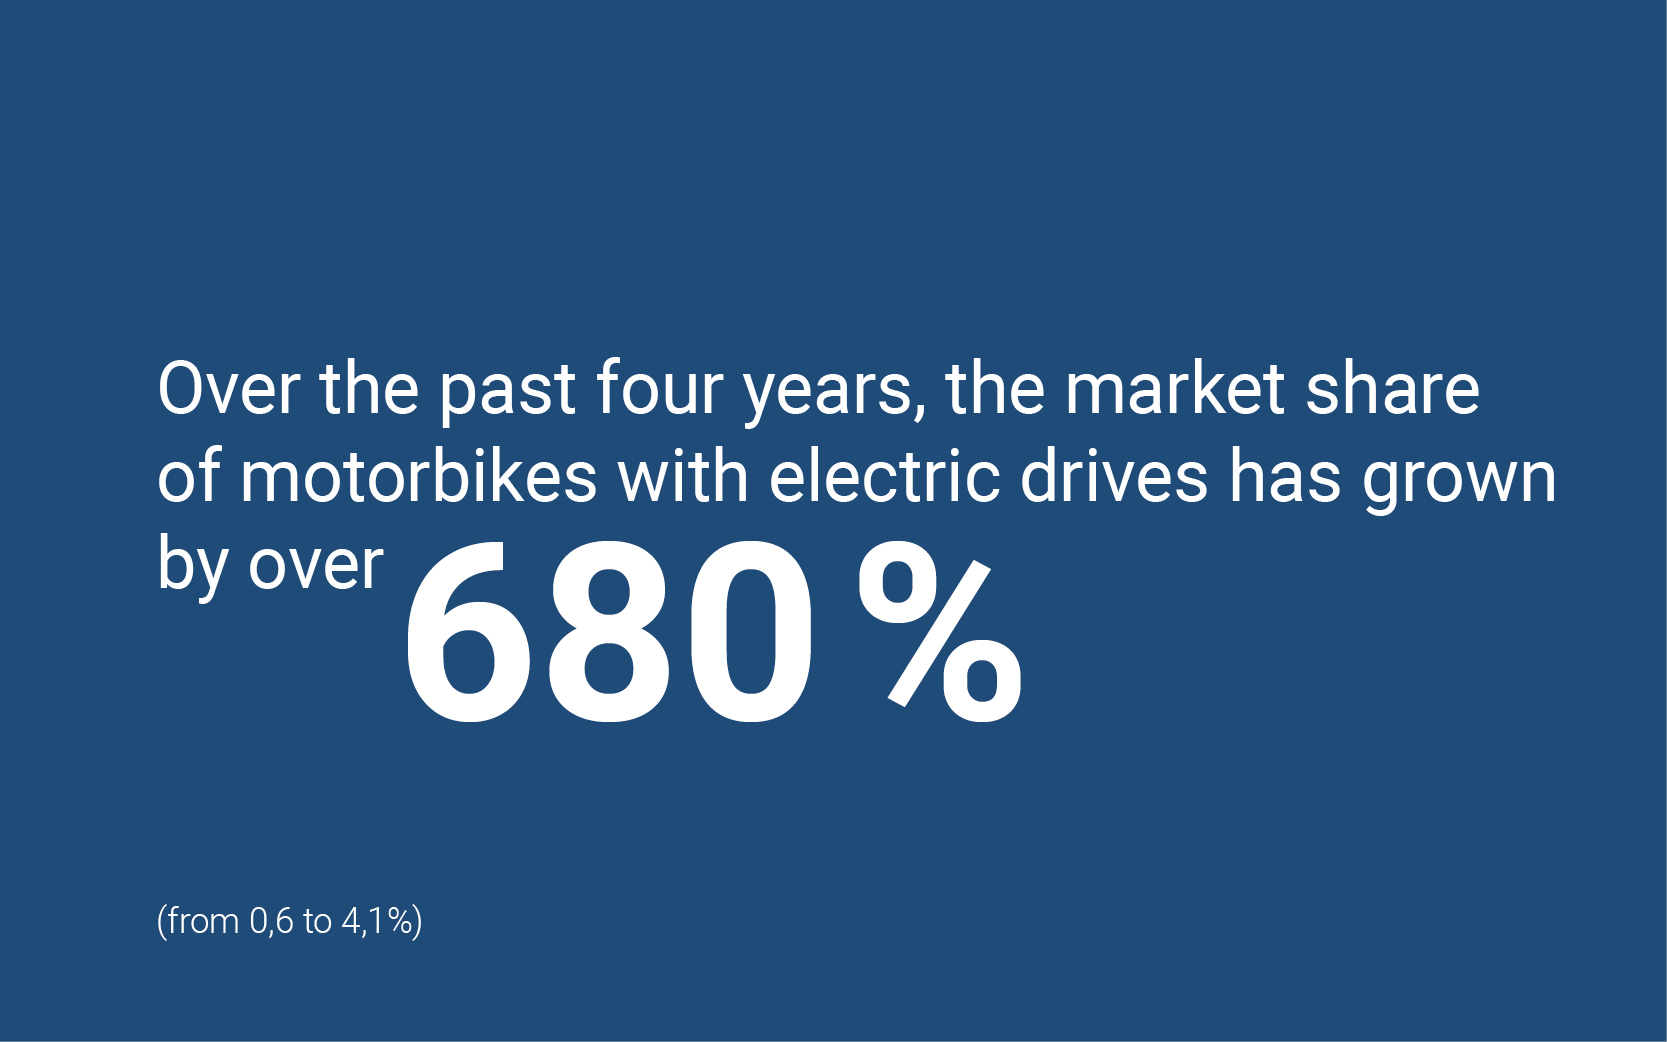 Over the past four years, the market share of motorbikes with electric drives has grown by over 680%